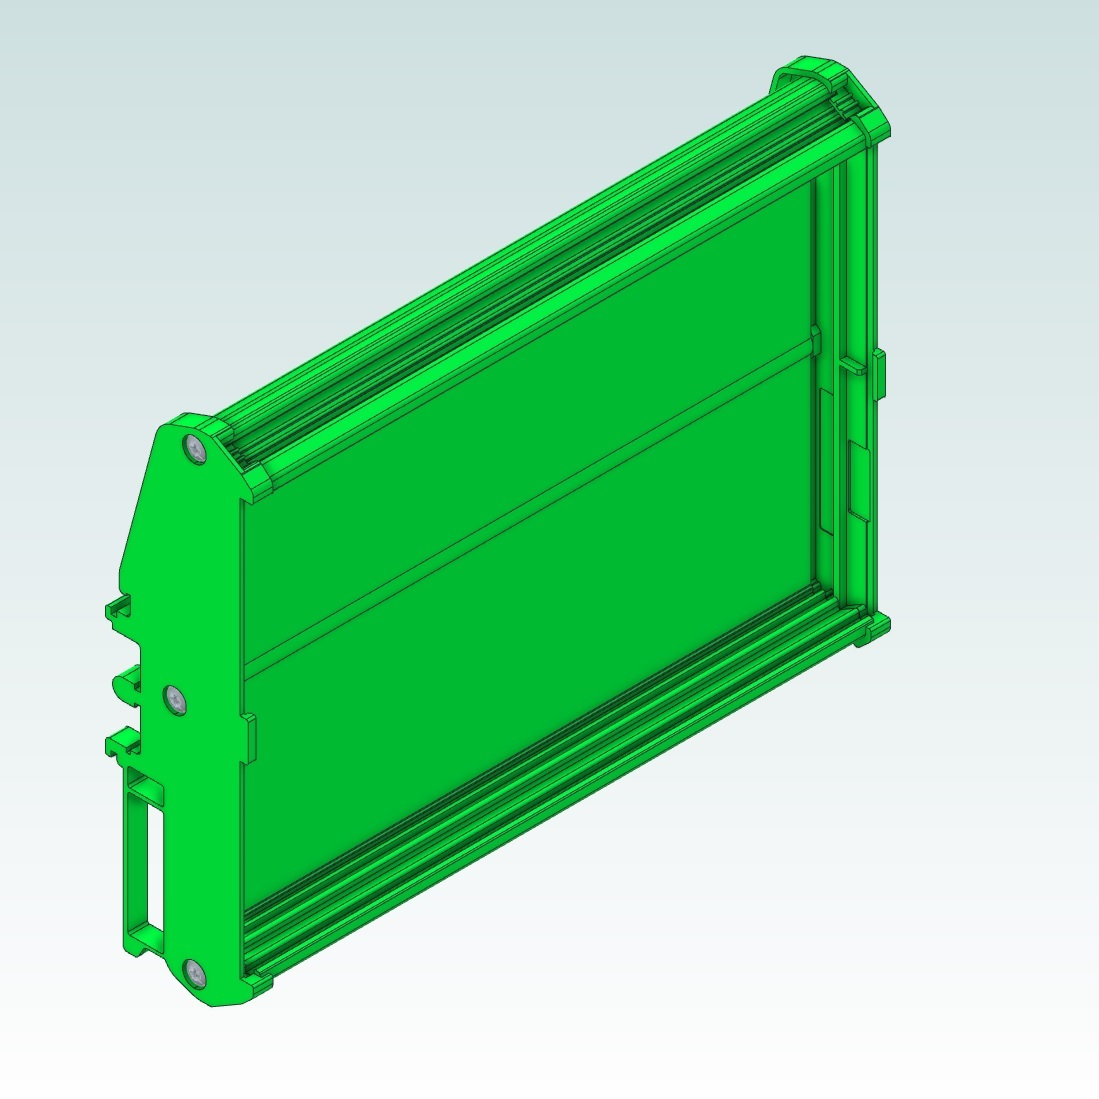 52141 dinrail mount for rly8 io extension interface 108x160mm render